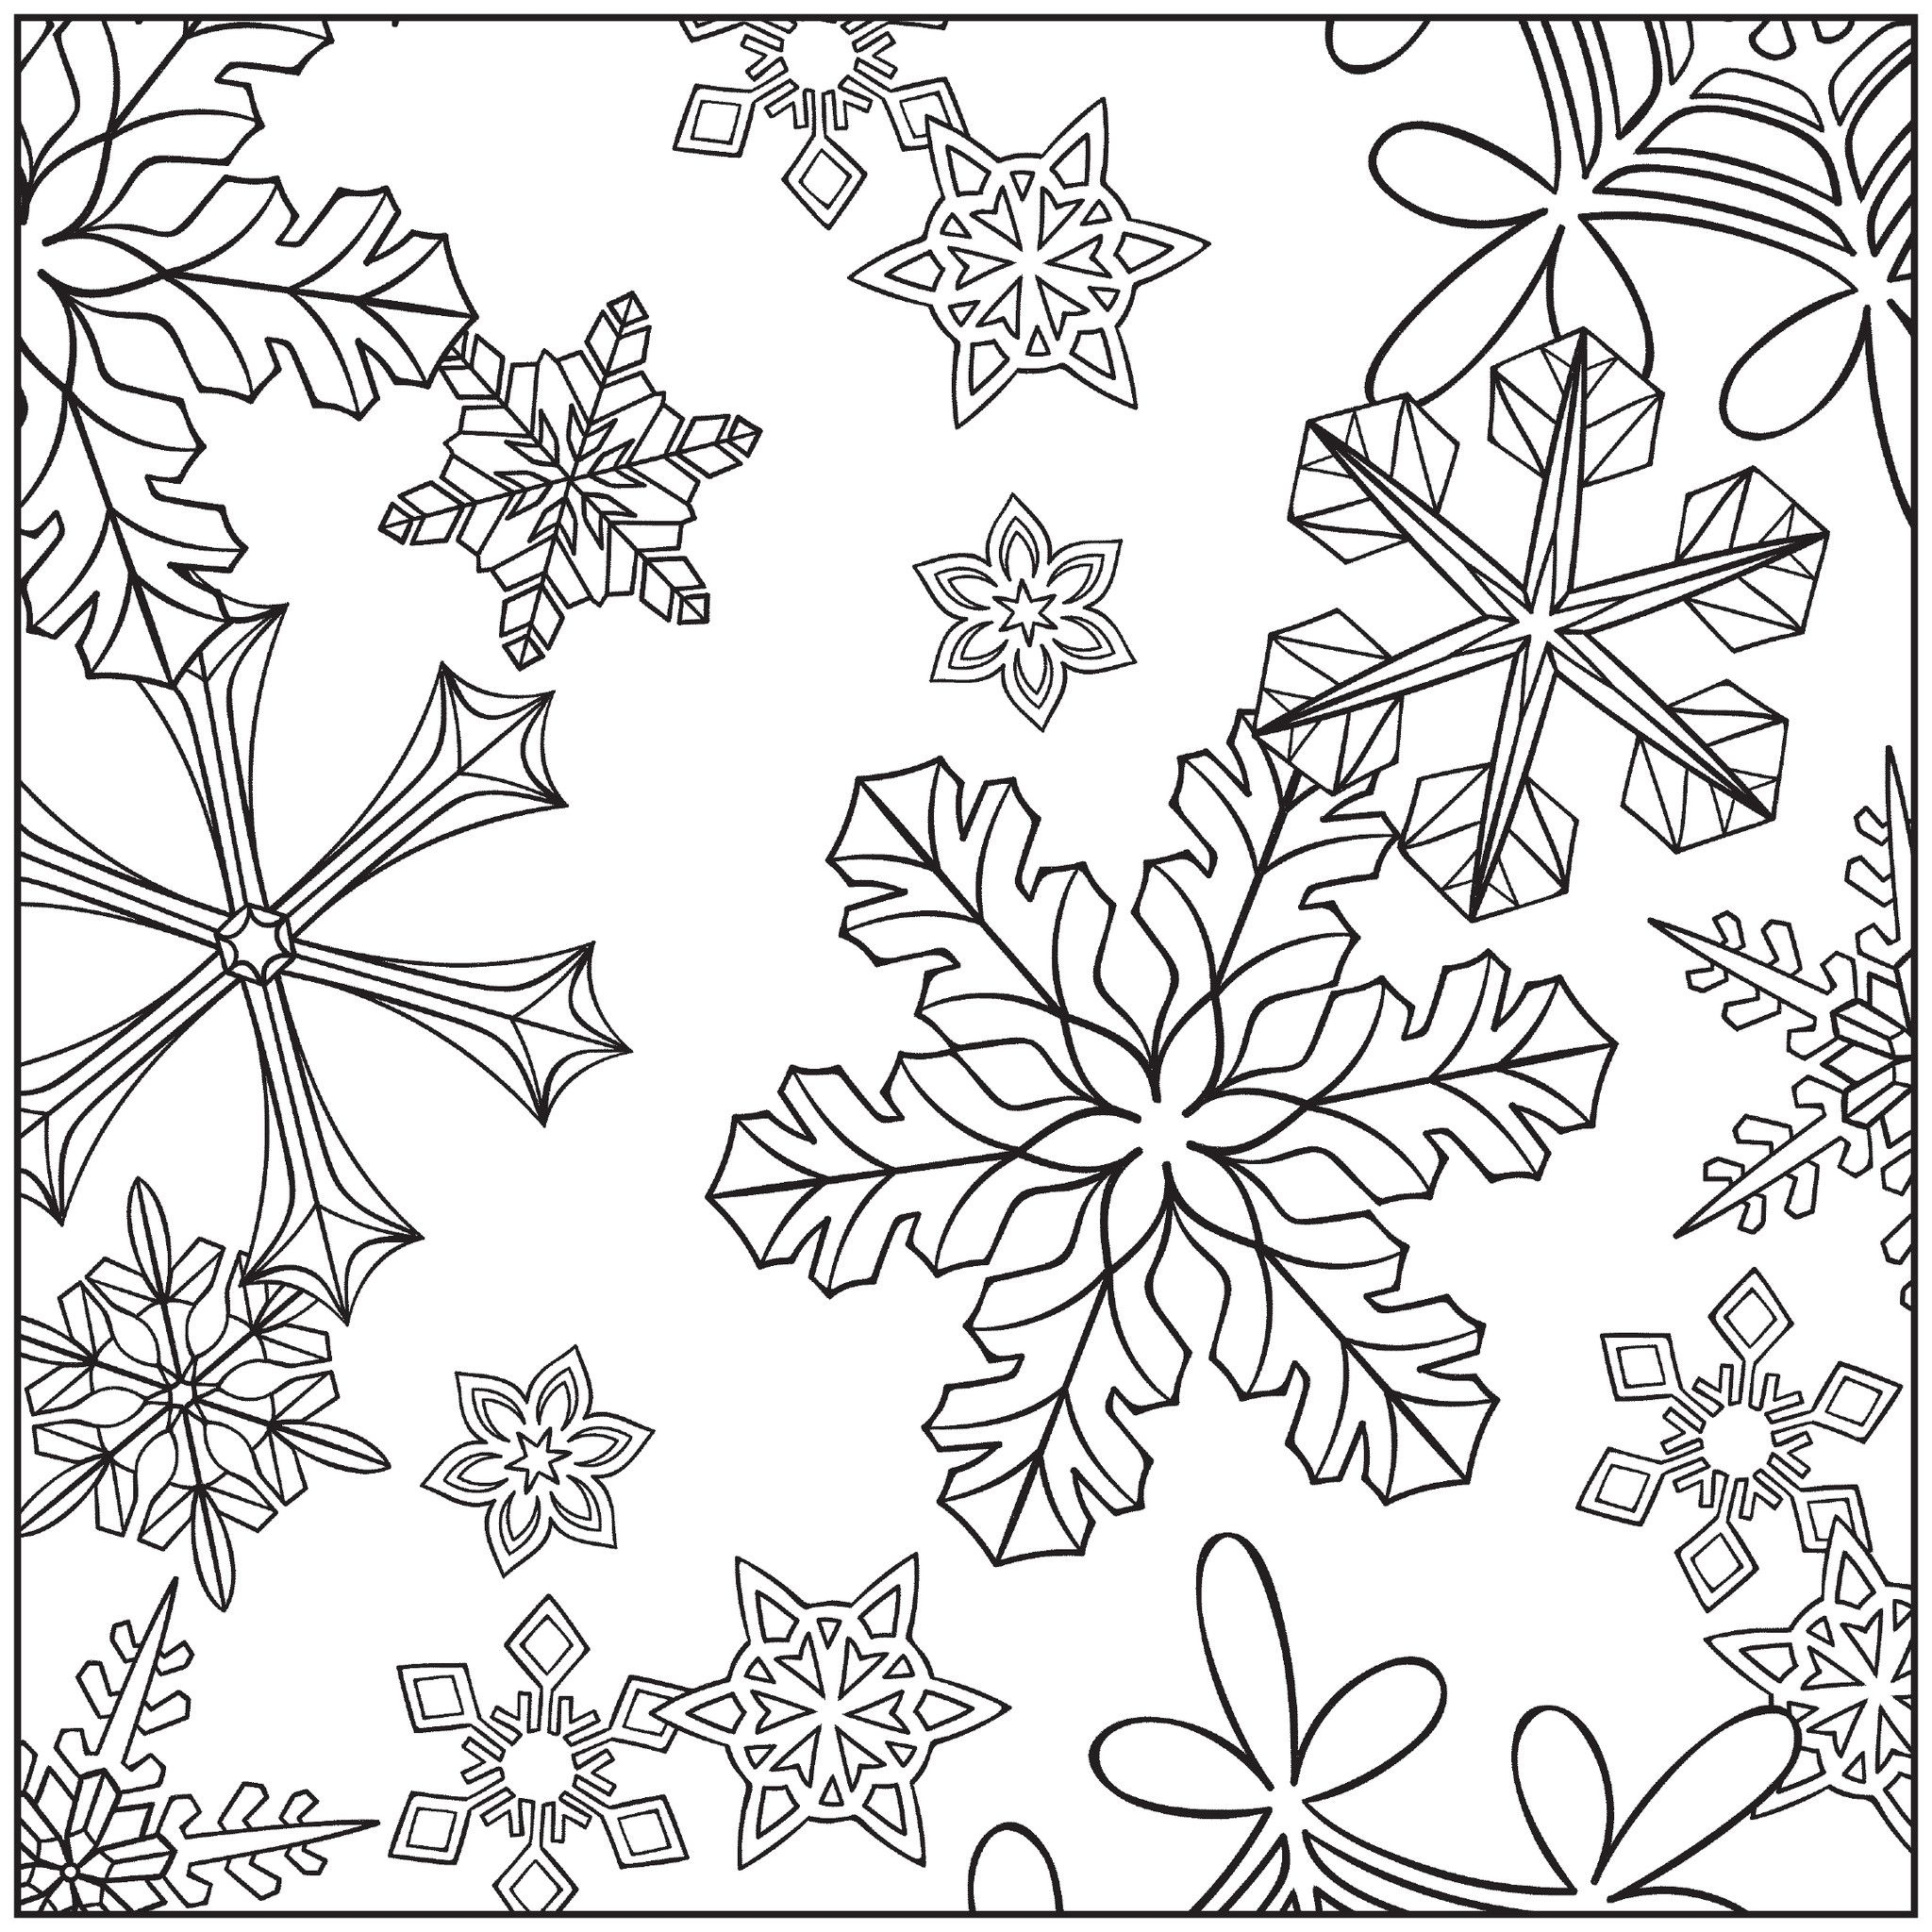 Winter pages to color - 5d59c097cdad327986bcd00971dc7a74 Jpg